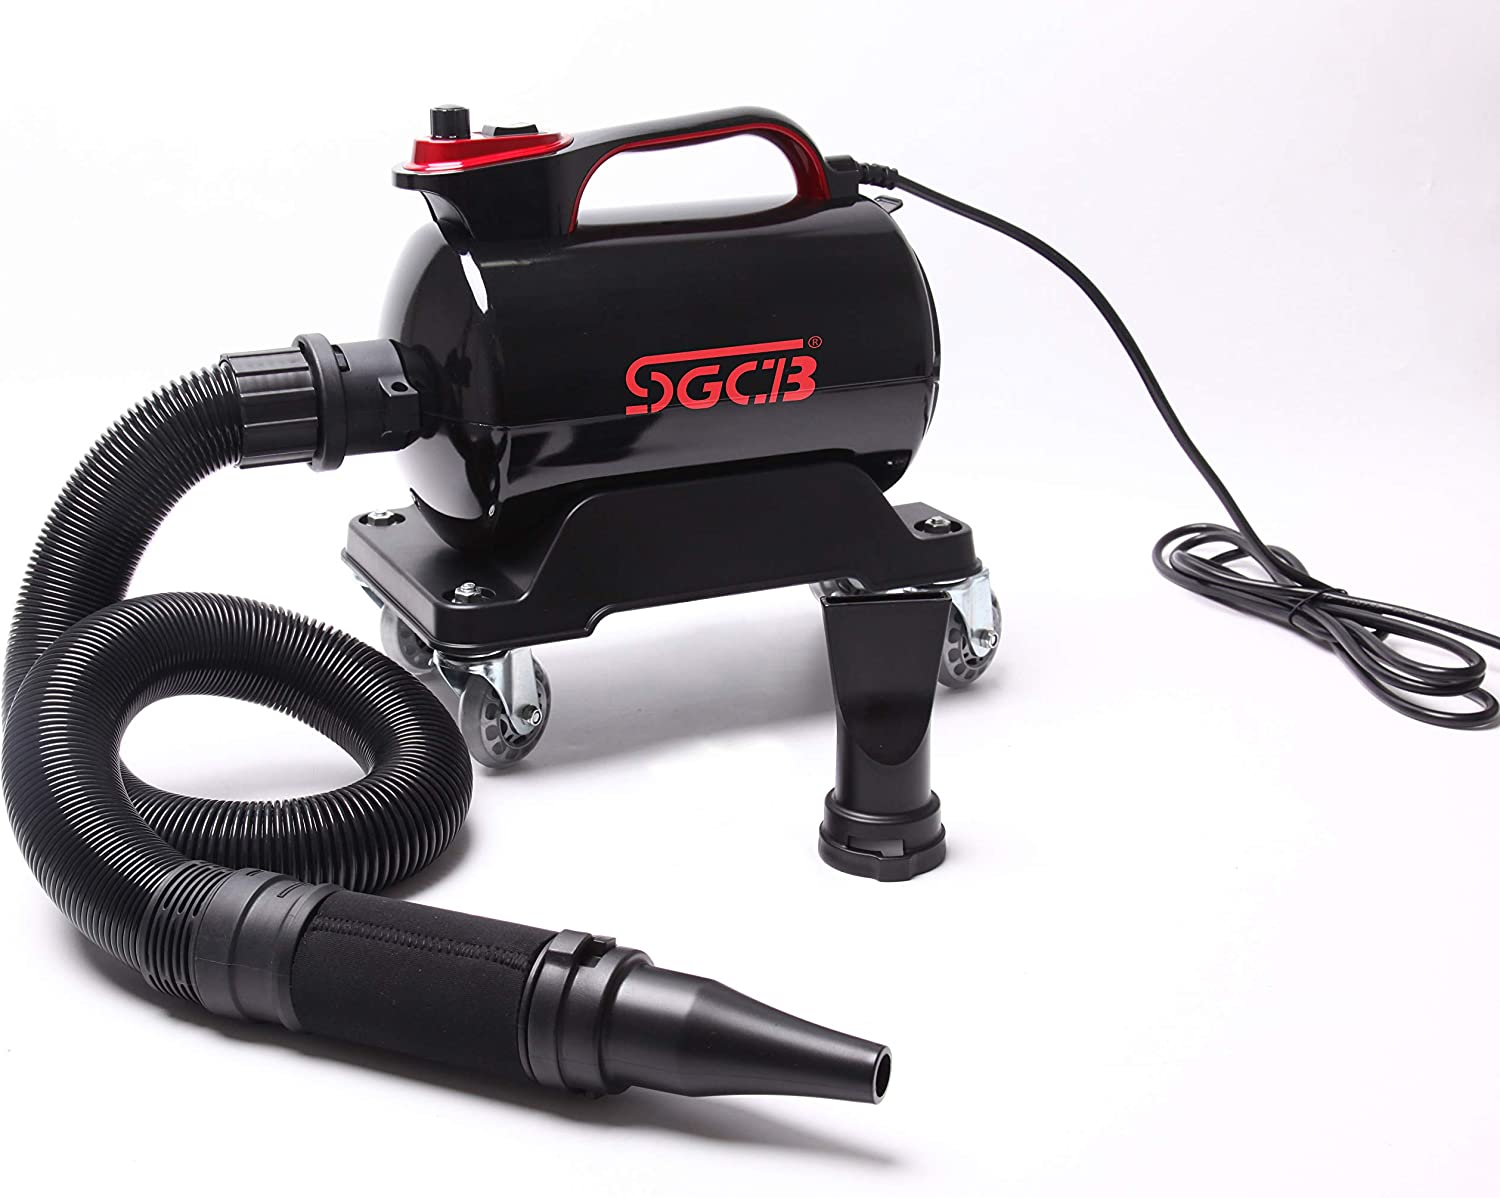 5.0 HP Powered Double Mode Temp High Velocity Car Air Forceful Blower w//Caster Base /& 10 Ft Flexible Hose /& 3 Air Jet Nozzles for Car Wash Water Drying SGCB PRO Car Dryer Air Cannon Blower